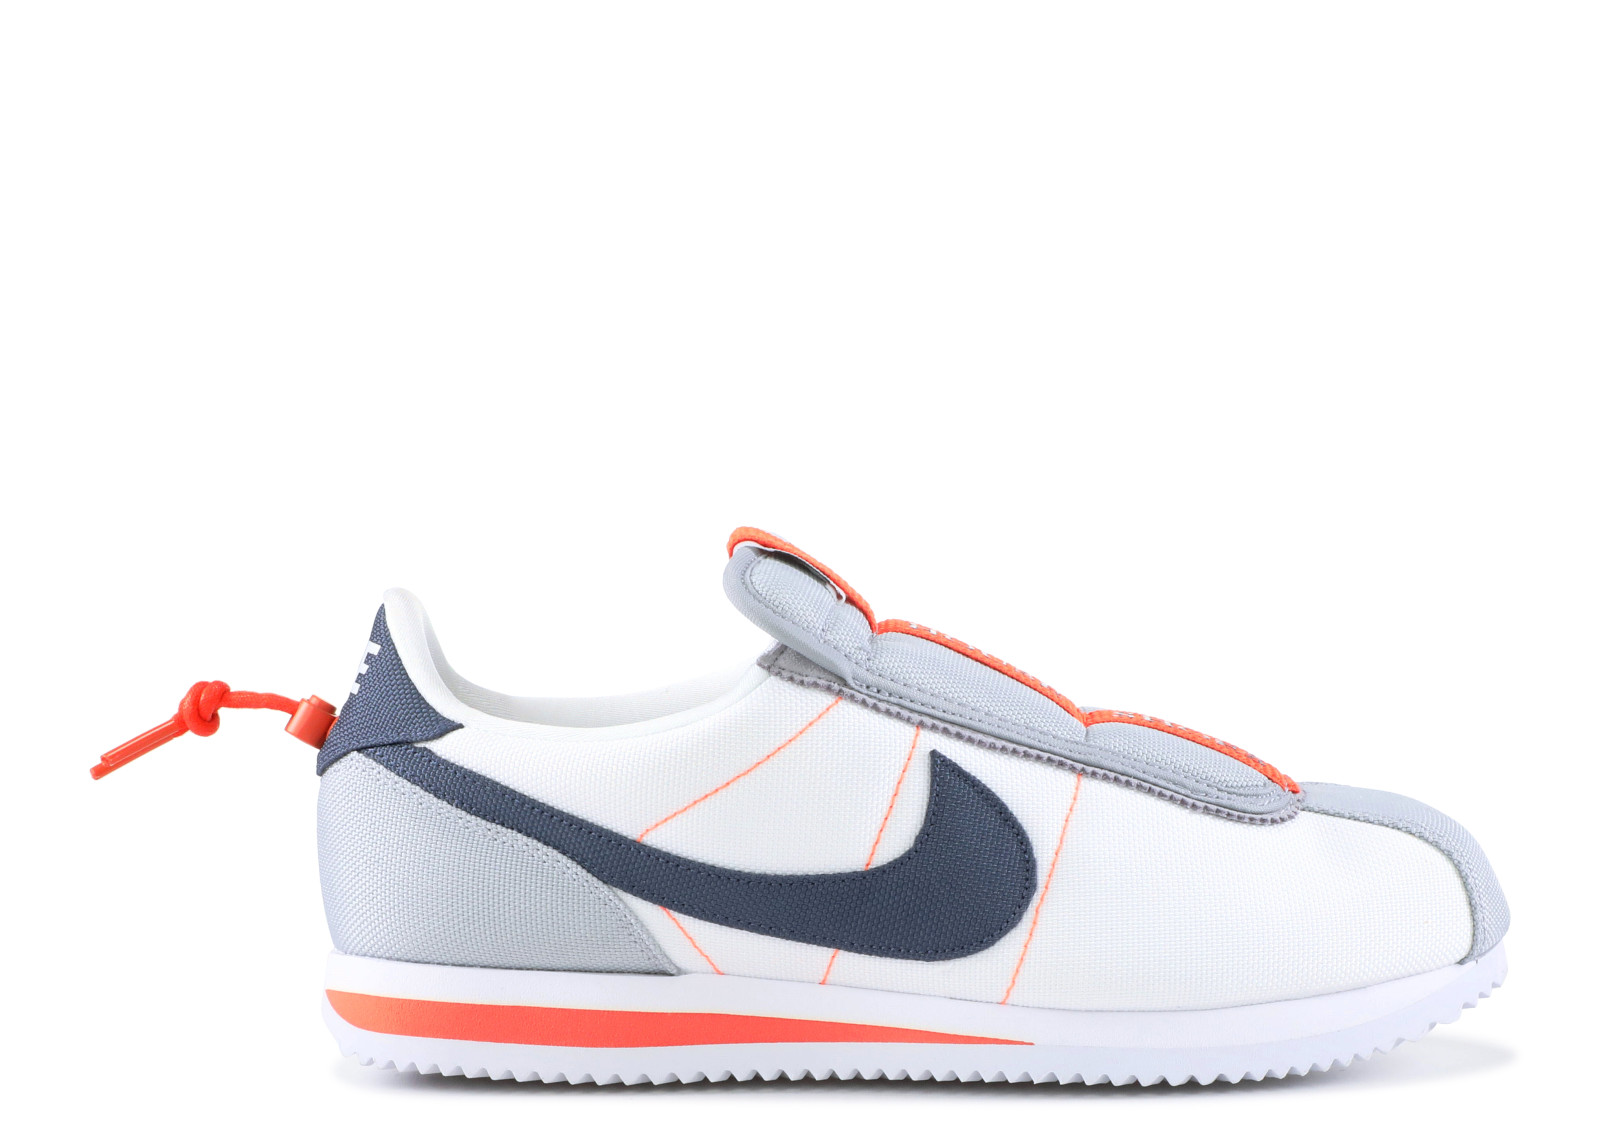 on sale cc5d8 26deb Nike - Men - Cortez Kenny Iv - Av2950-100 - Size 14